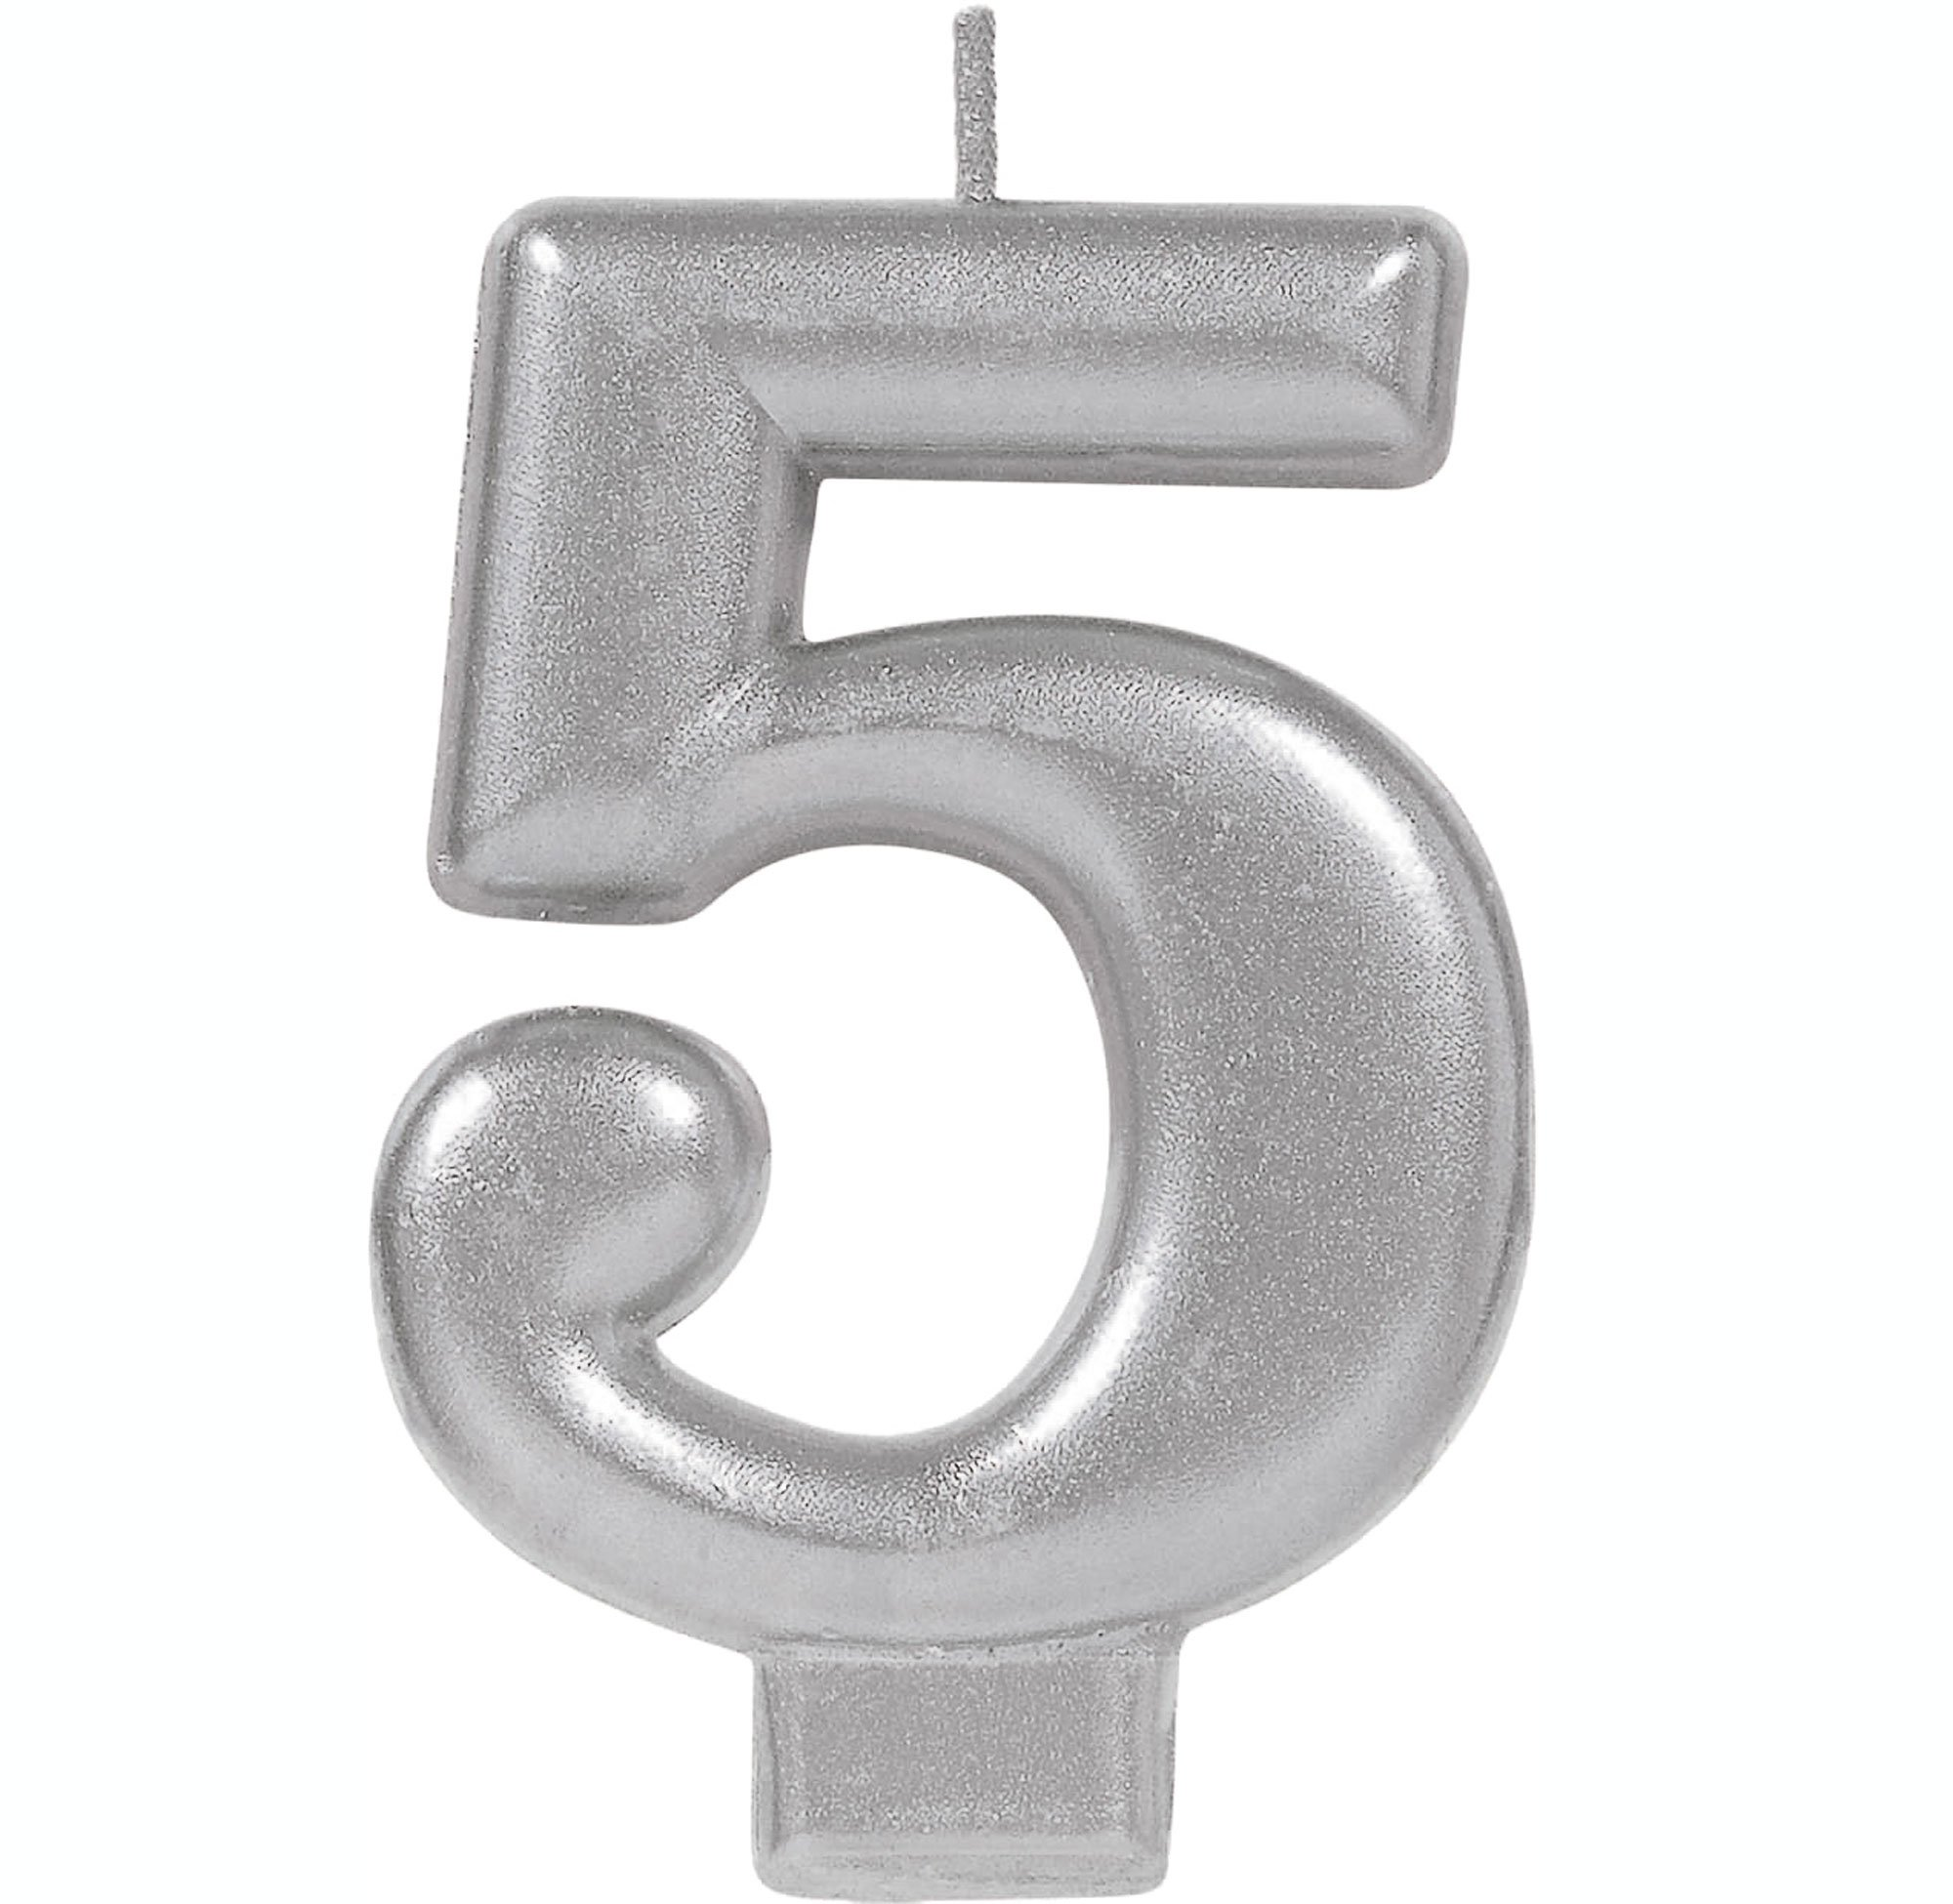 #5 Silver Metallic Numeral Moulded Candle